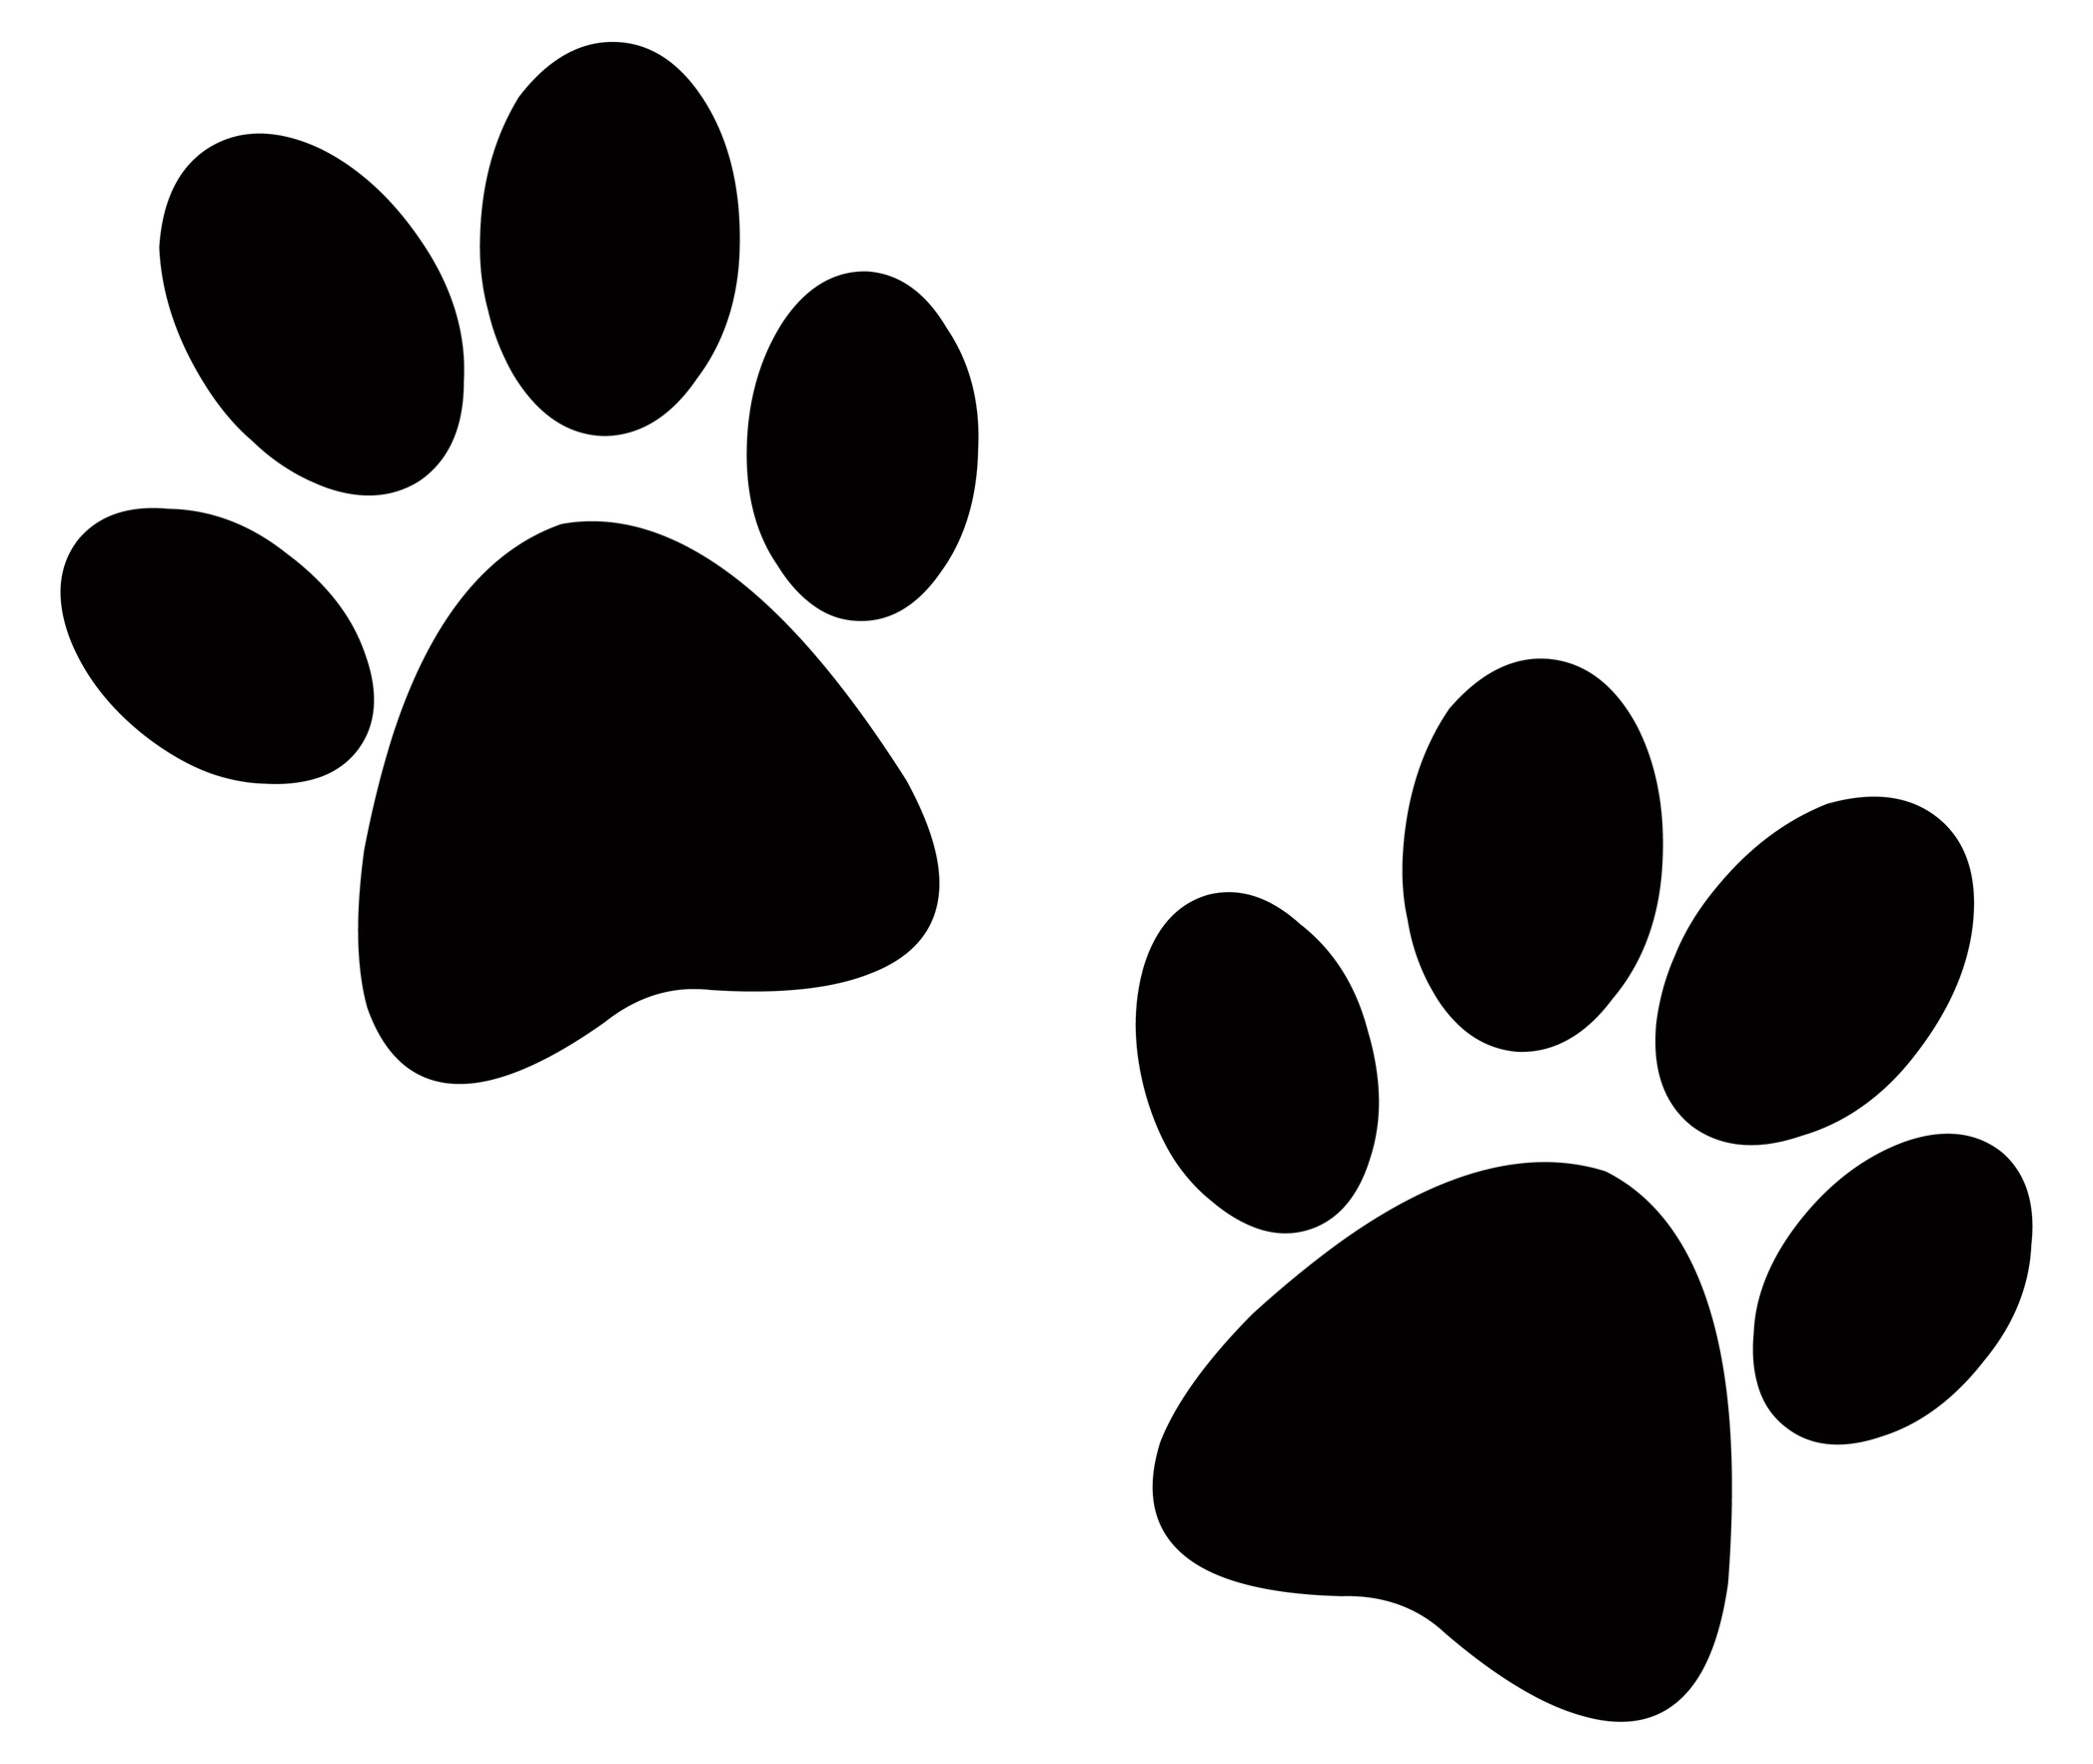 2095x1766 Paw Print Clip Art Black And White